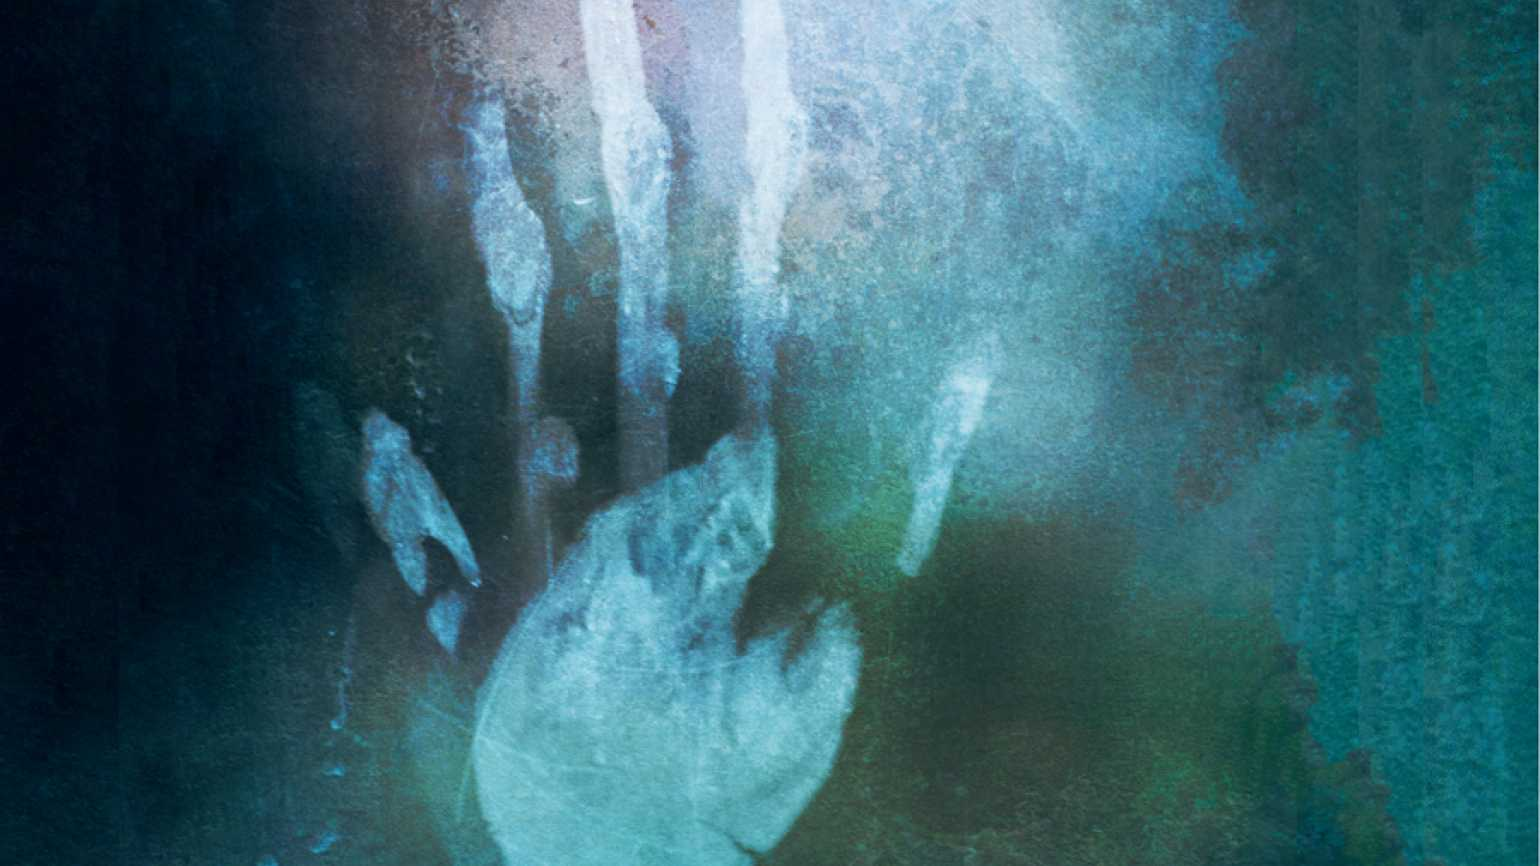 A mysterious hand appears against green-gray of a mirror.